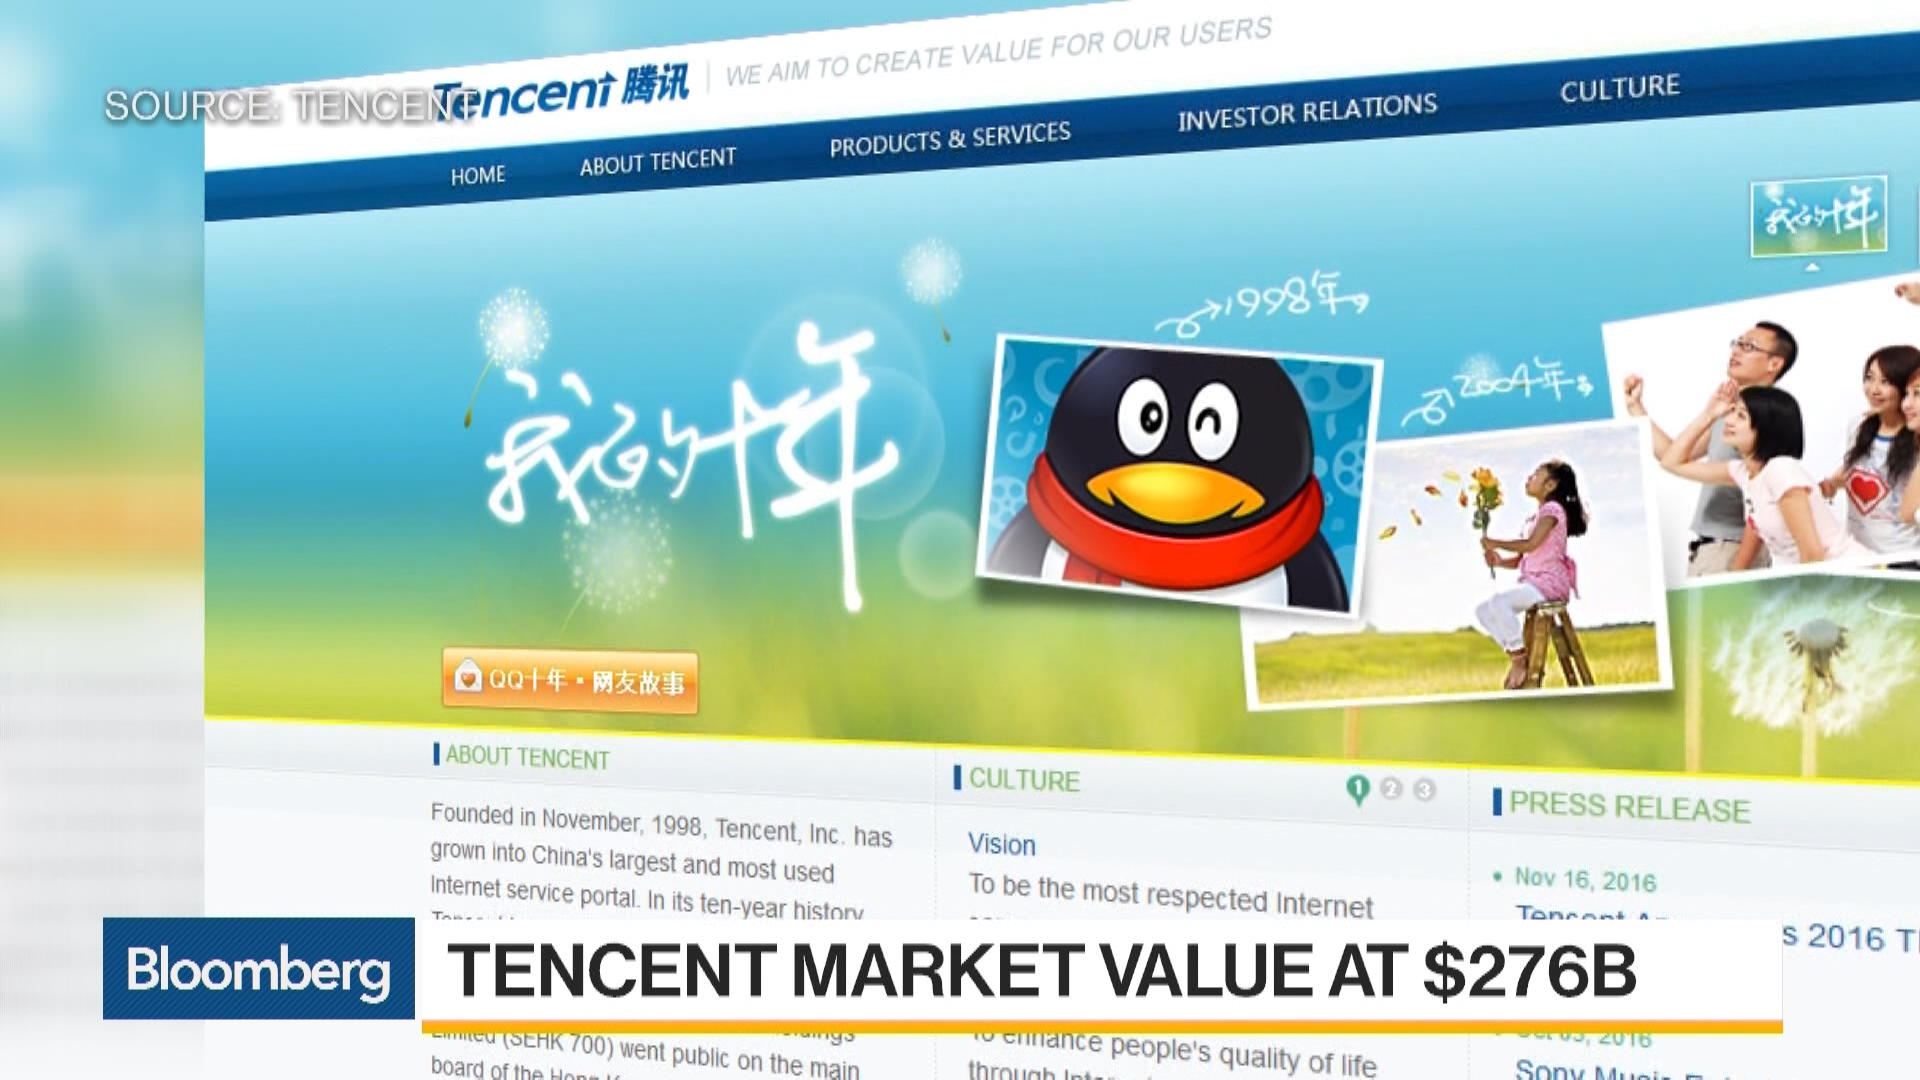 American Century Says Tencent Has Been A Good Story